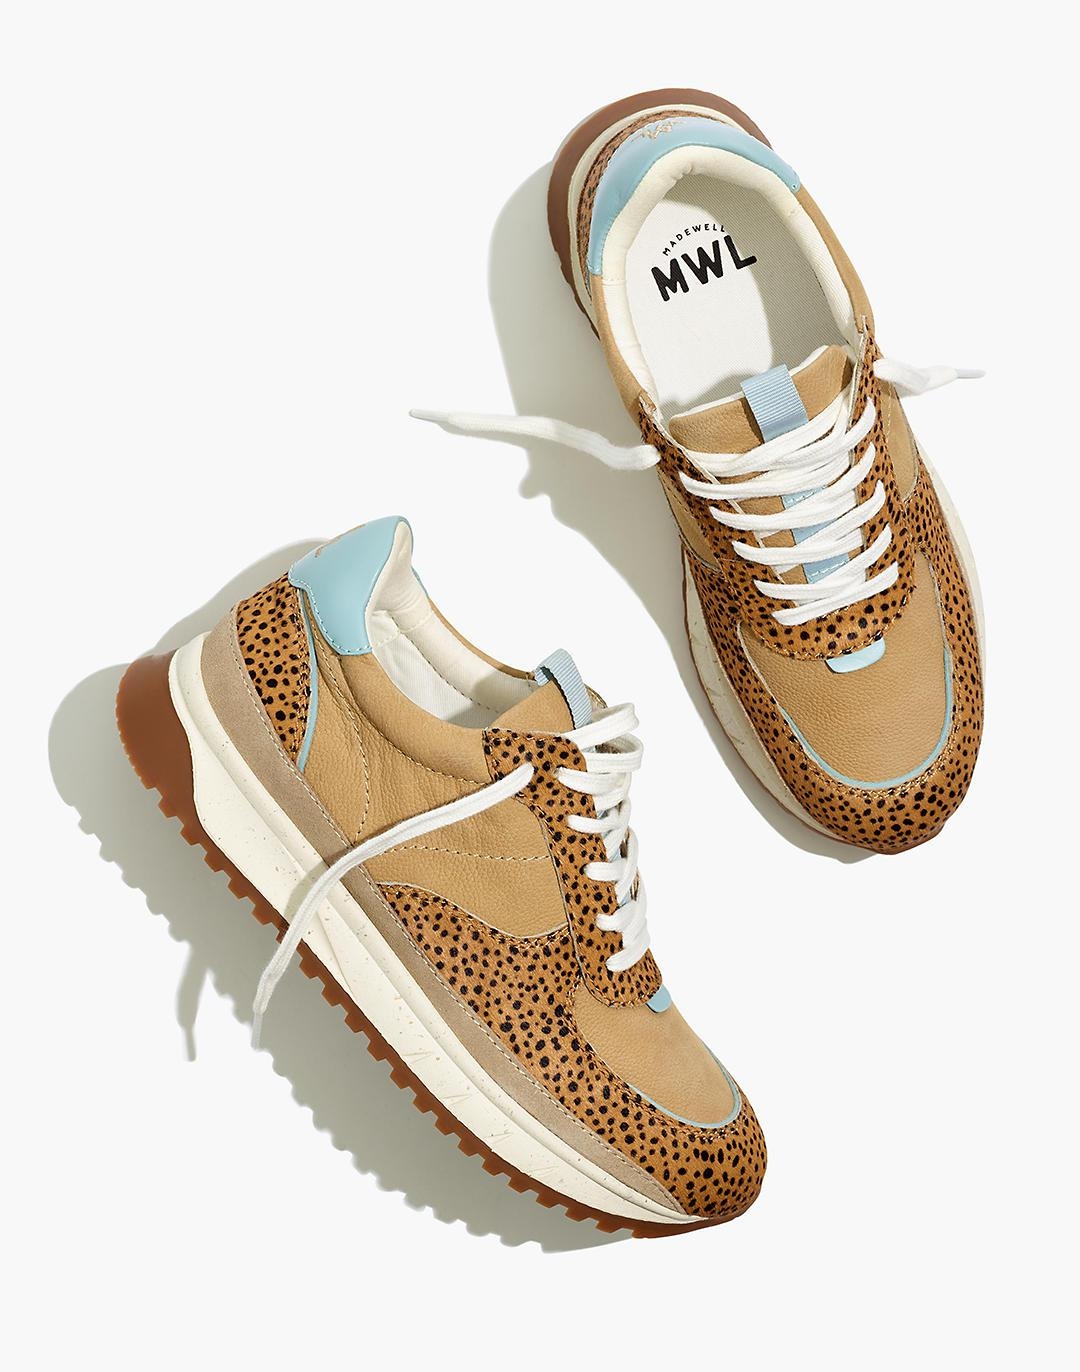 Kickoff Trainer Sneakers in Spot Dot Calf Hair and Nubuck